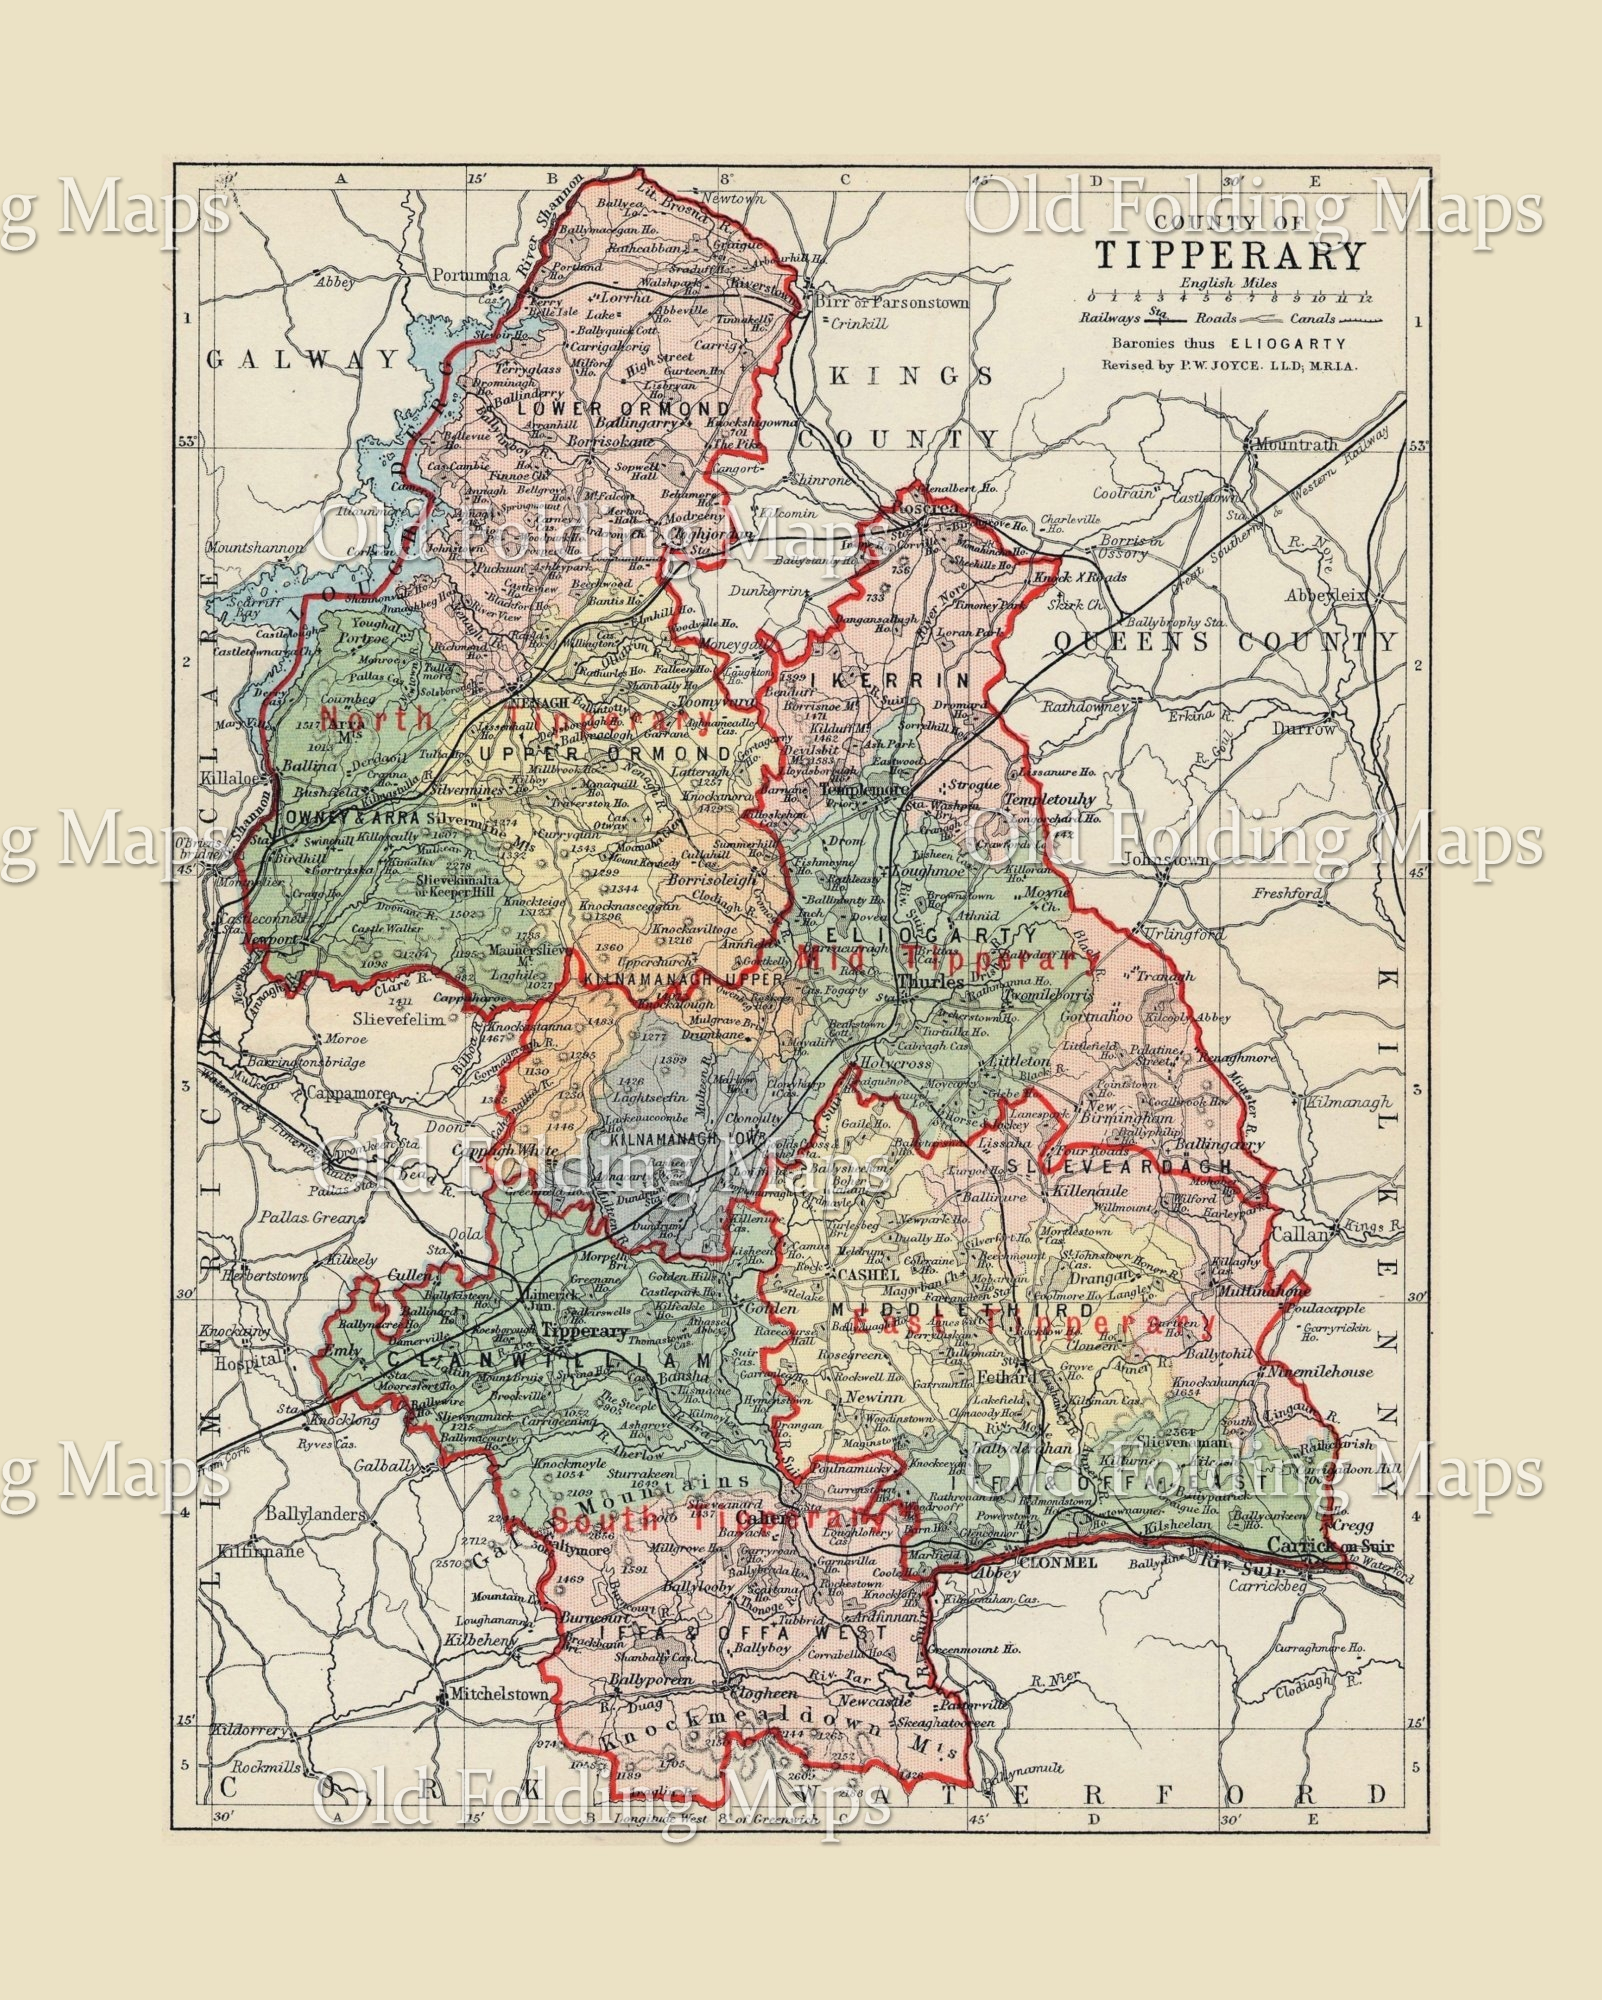 County Tipperary Ireland Map.Antique County Map Of Tipperary Ireland Circa 1884